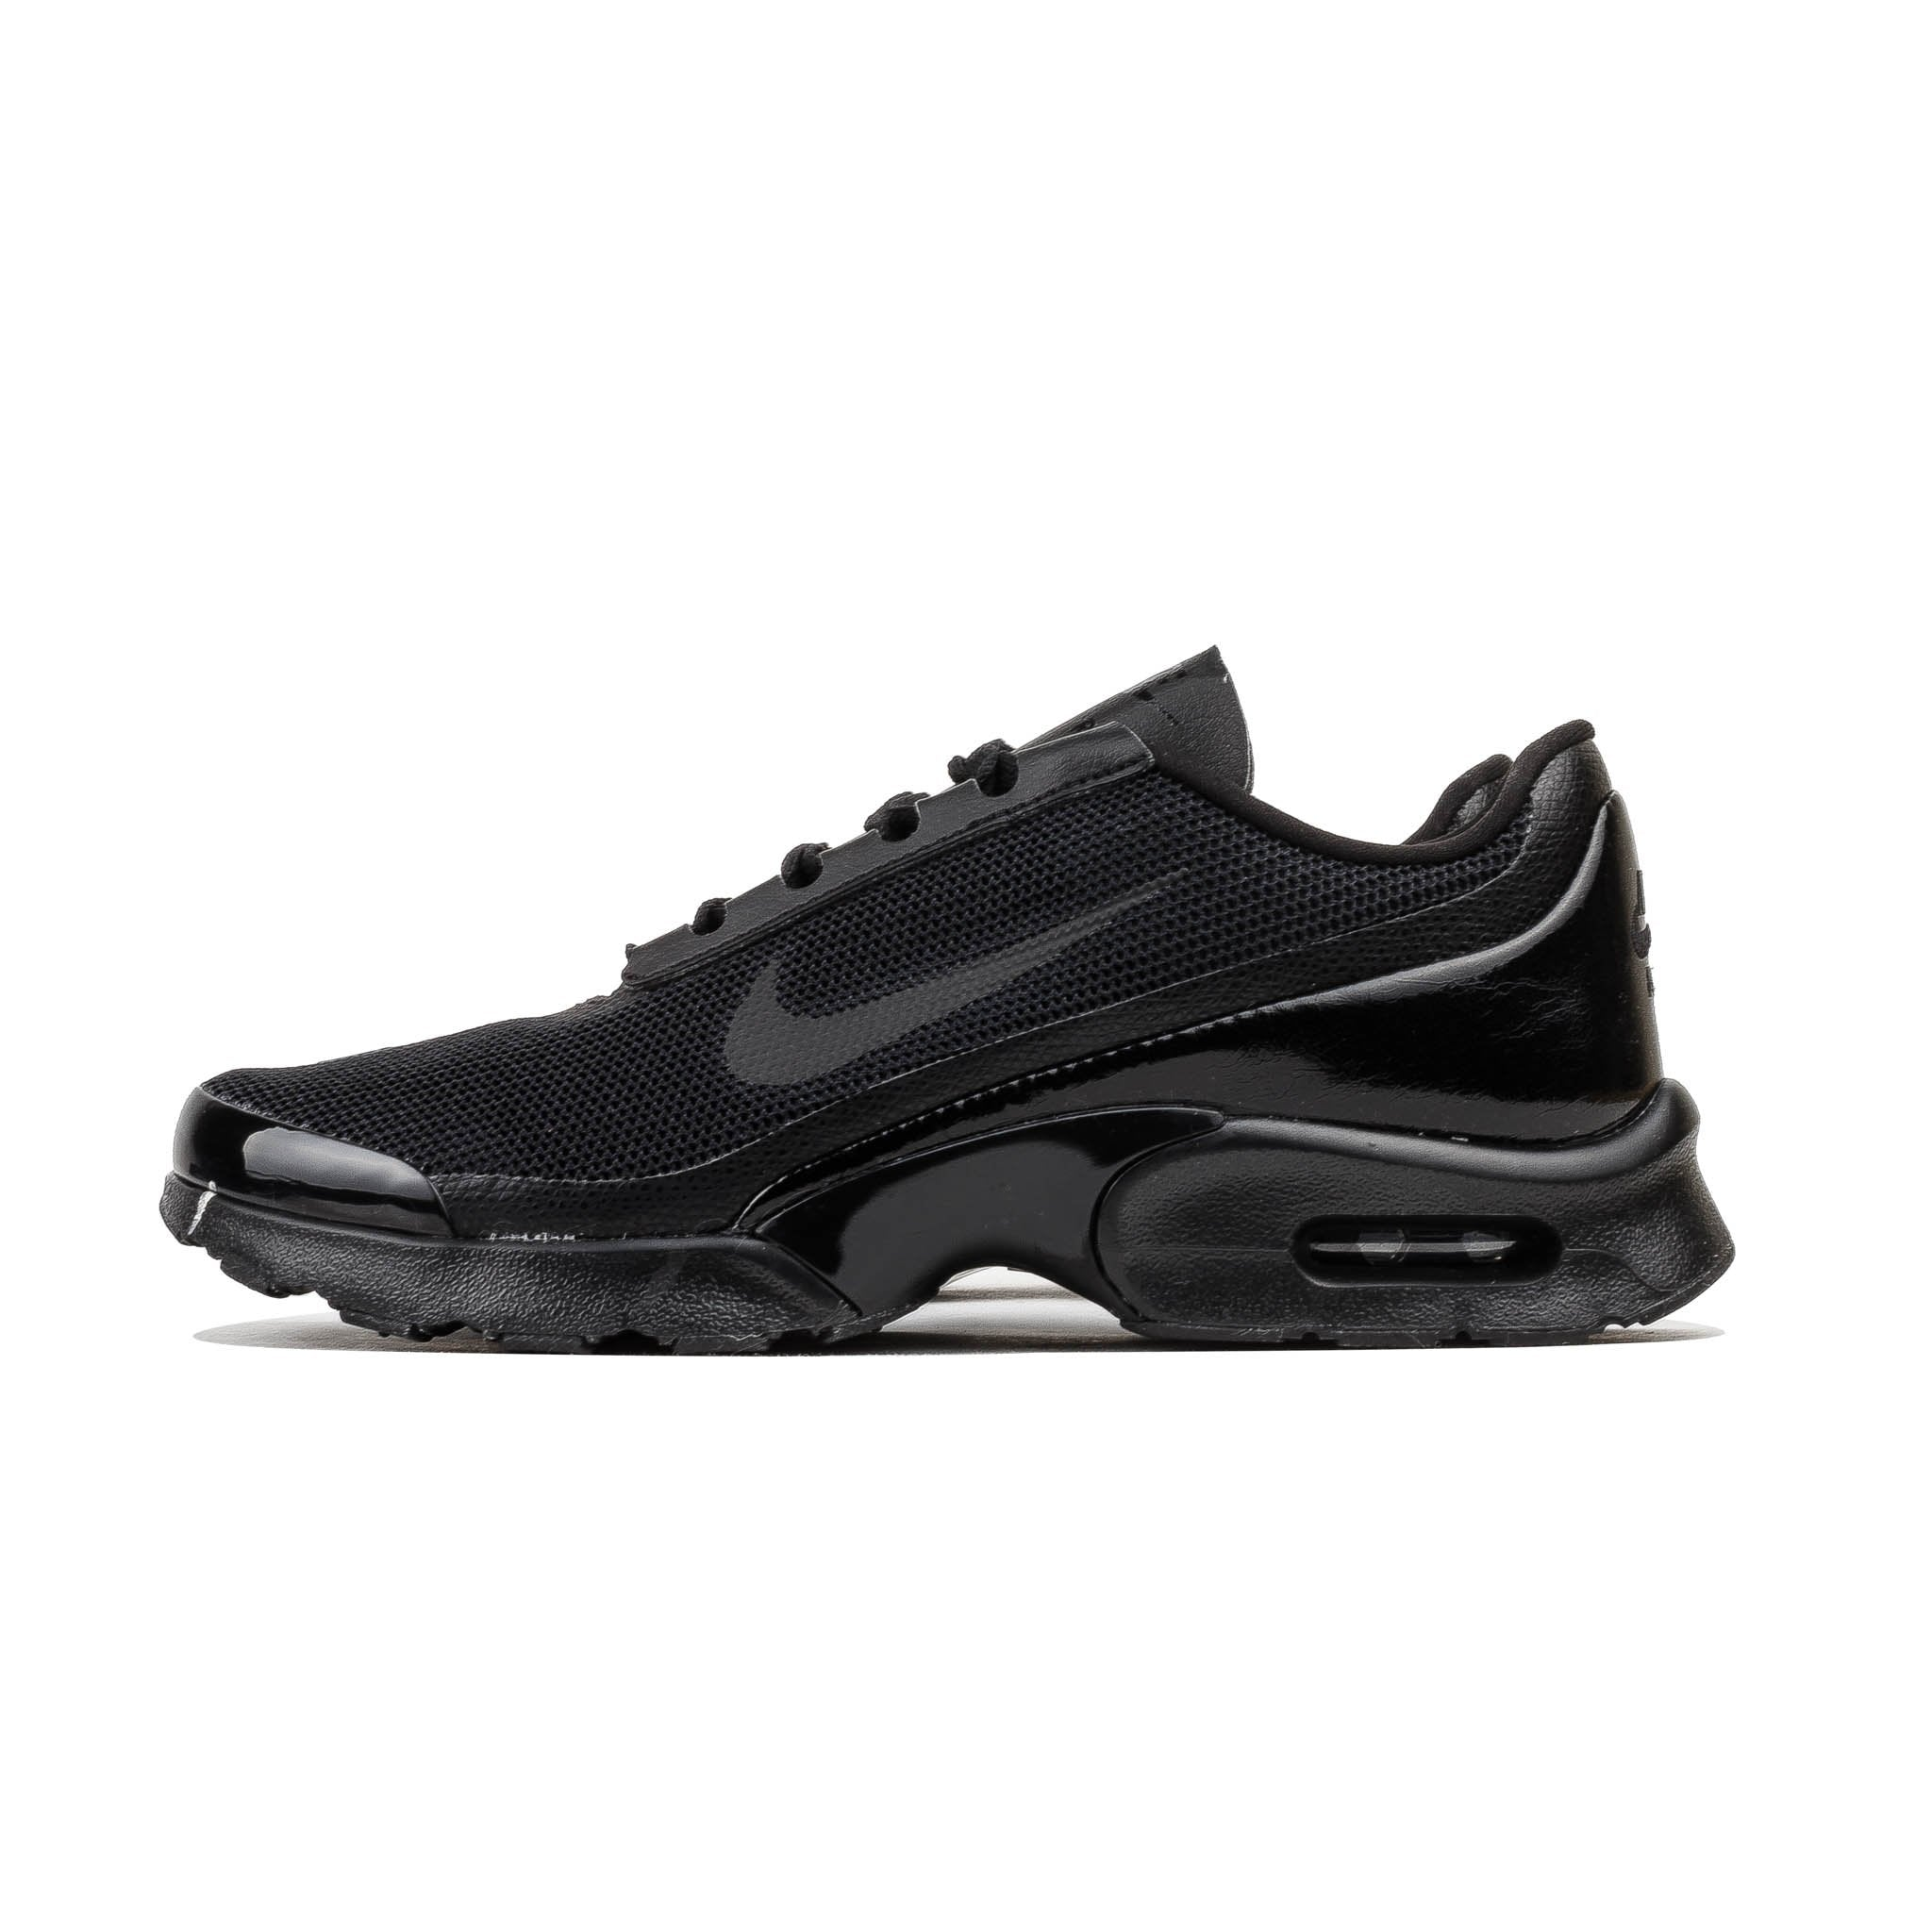 W Air Max Jewell 896194-005 Black